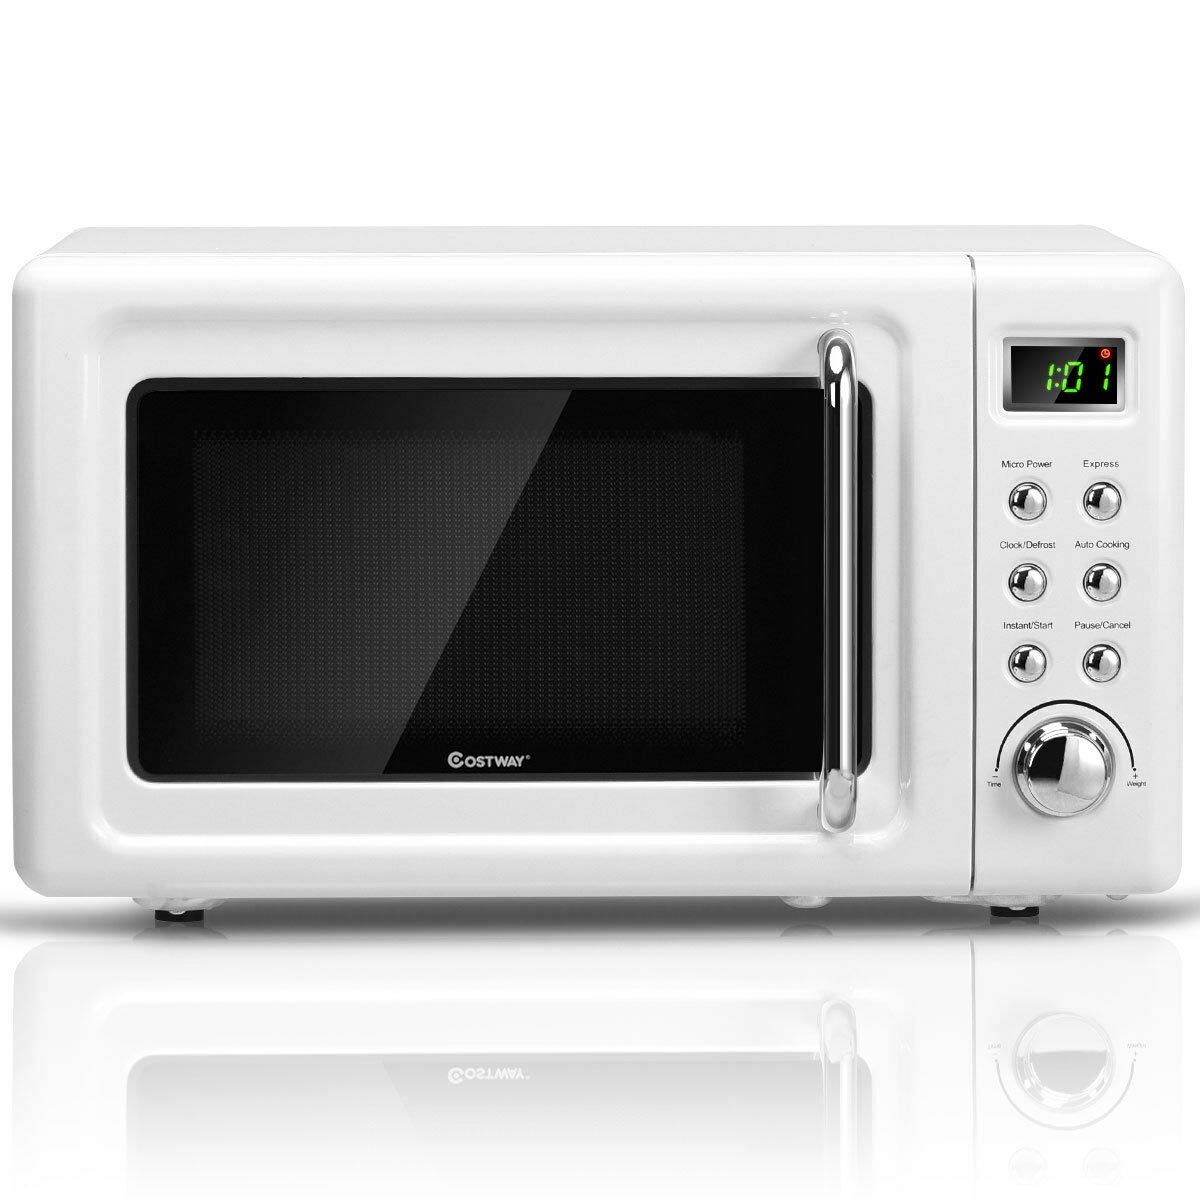 Home In 2020 Countertop Microwave Oven Compact Microwave Oven Microwave